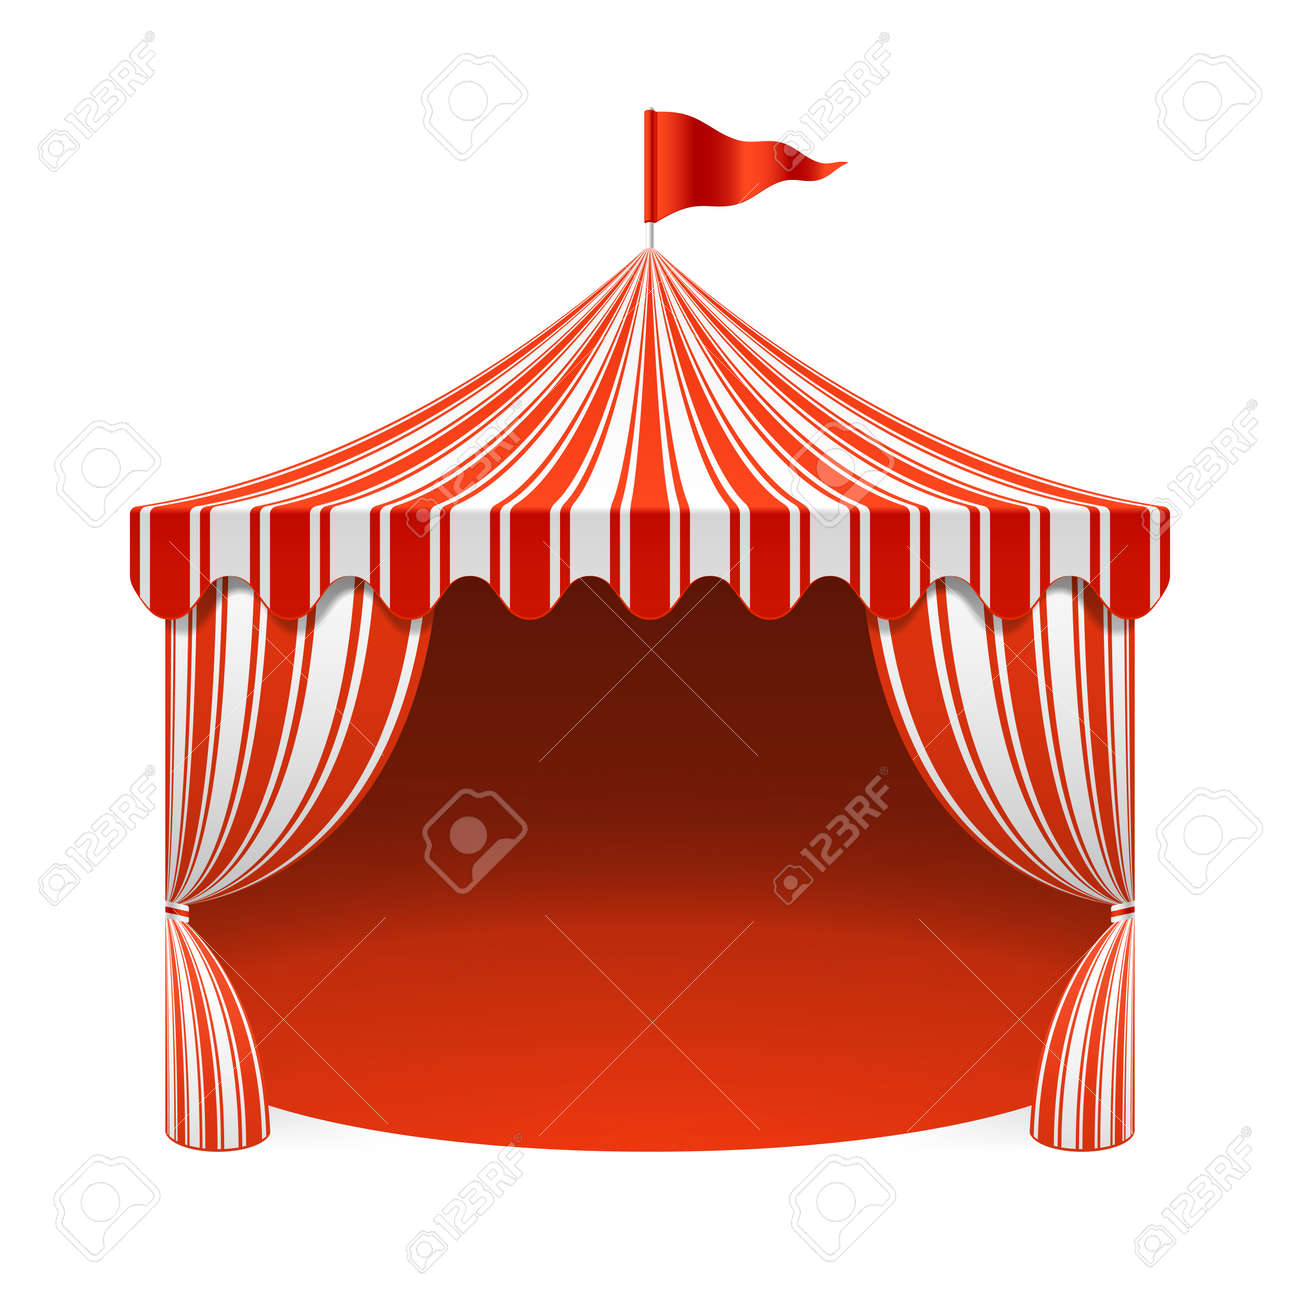 reputable site adcd4 27047 Circus tent, poster background